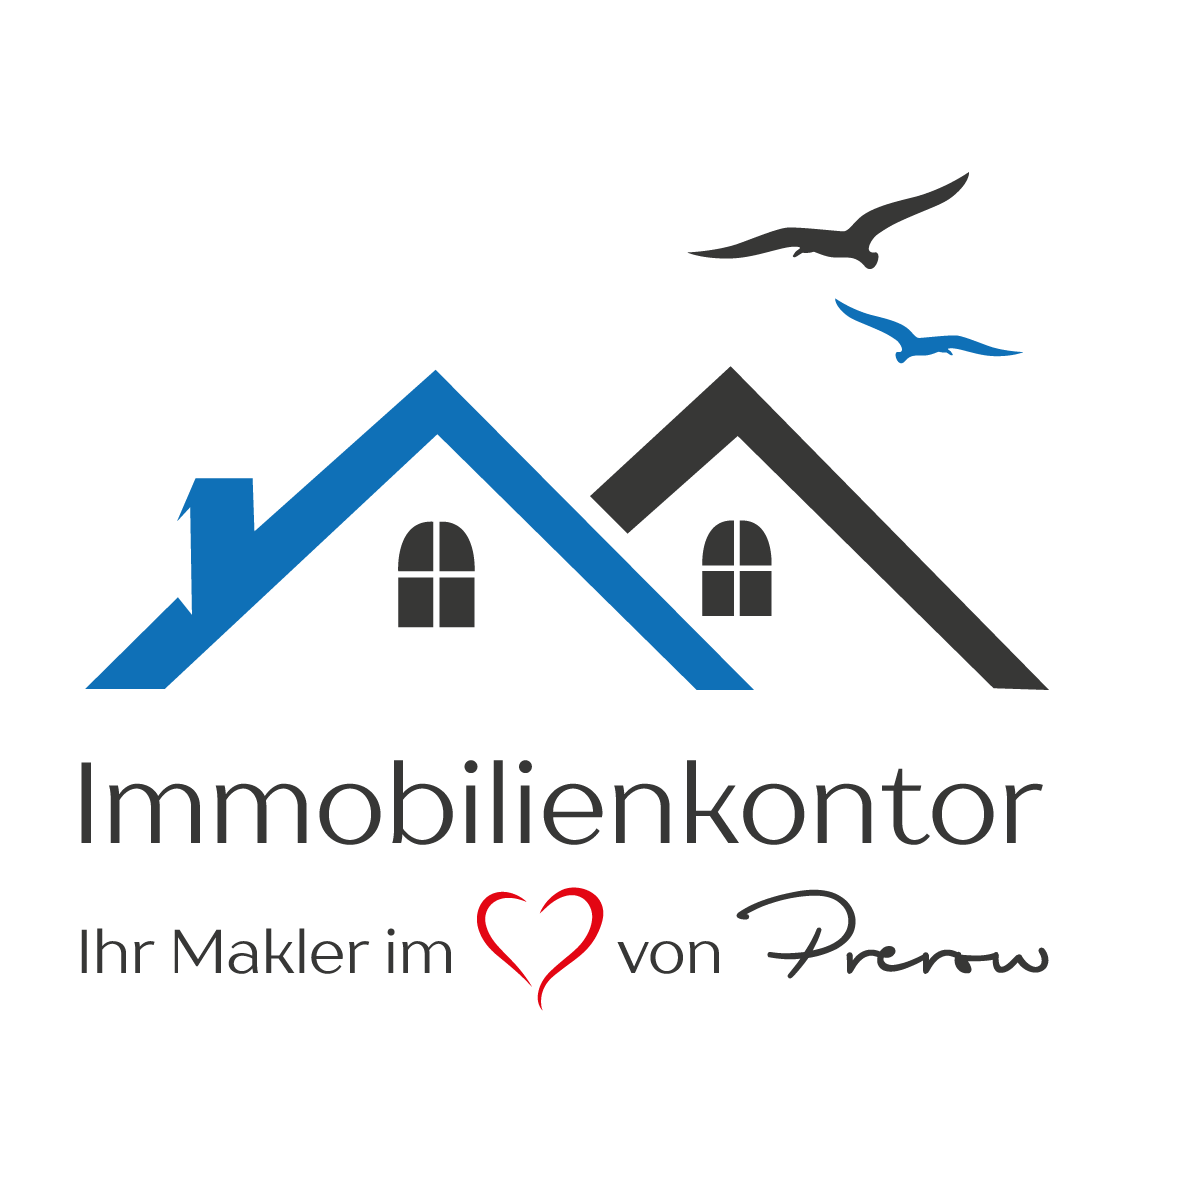 Immobilienkontor Prerow